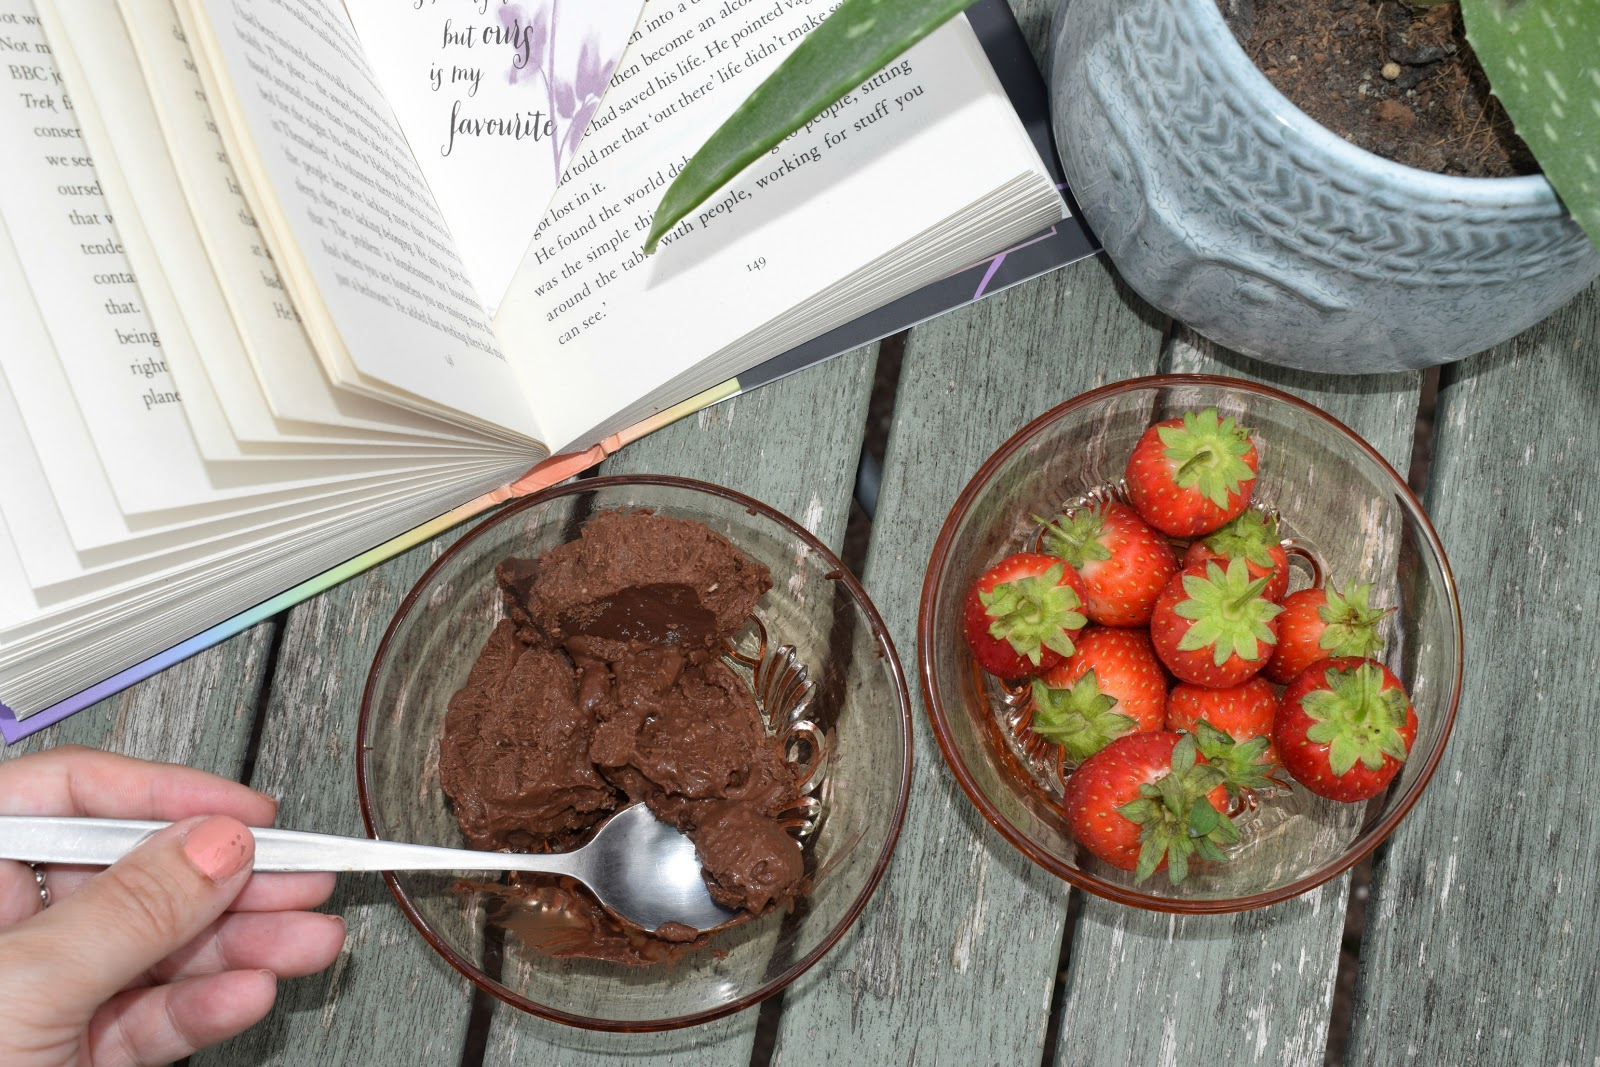 My four ingredient dairy free chocolate ice cream recipe